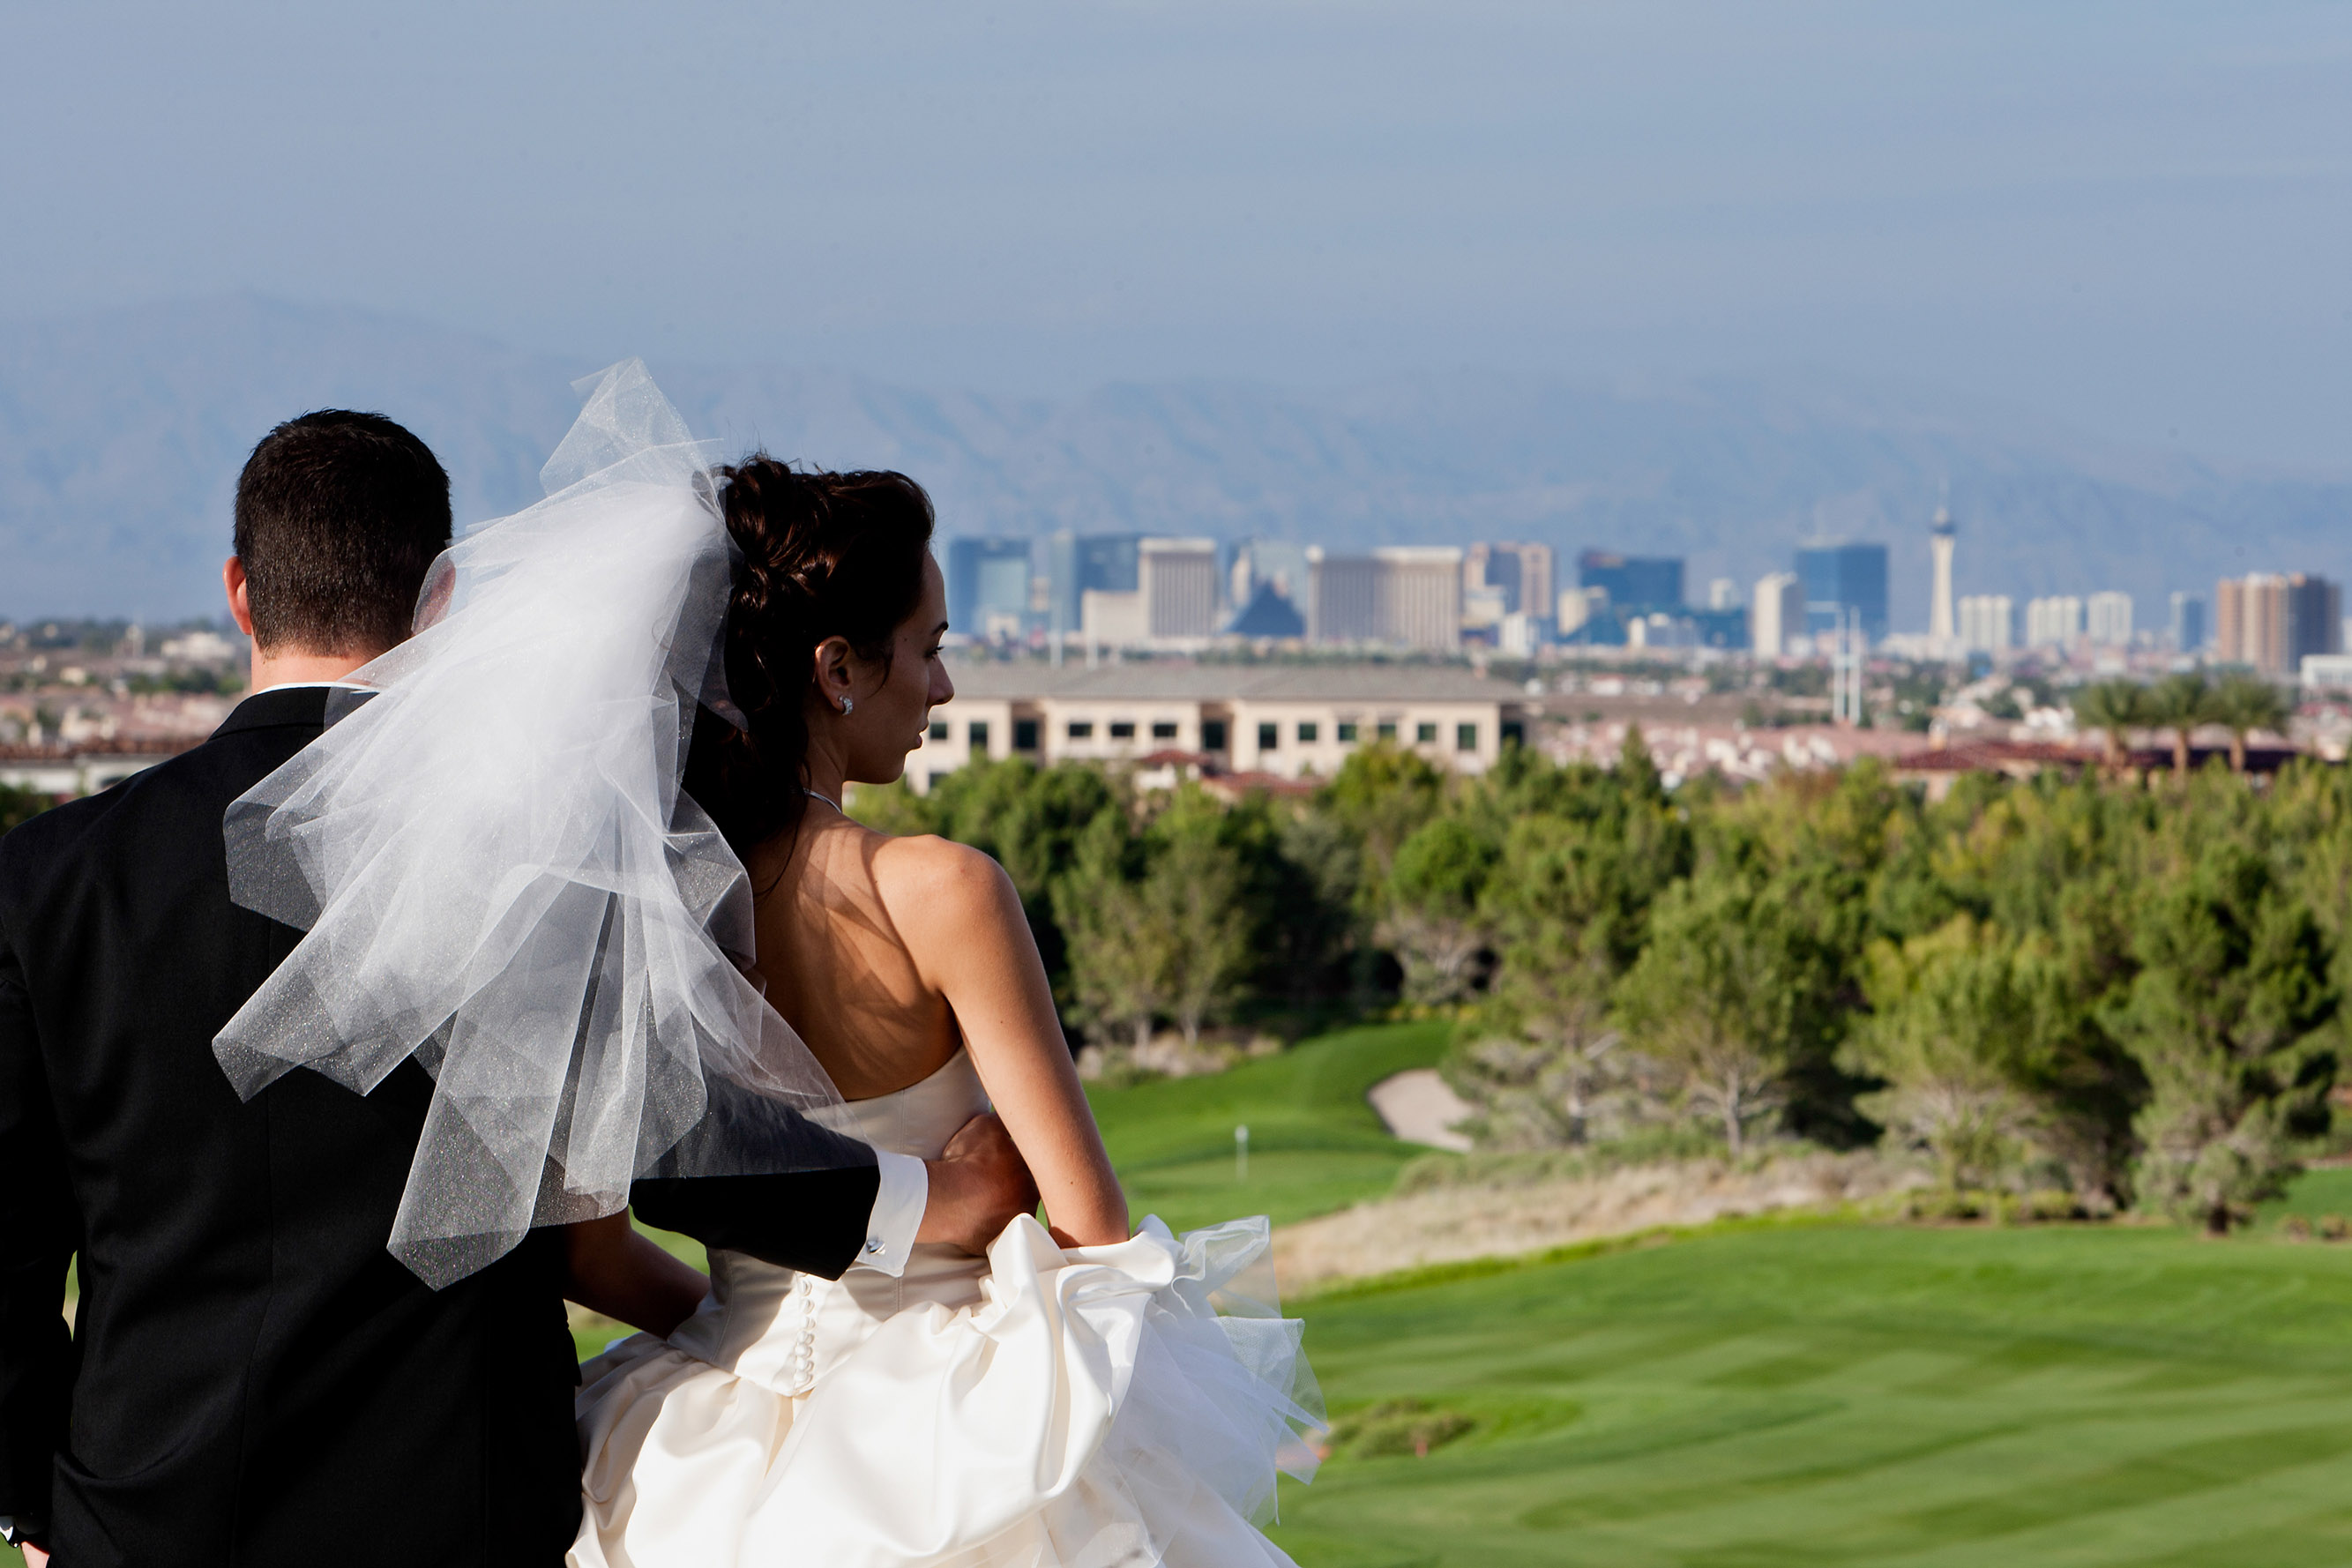 Las vegas transvestite wedding